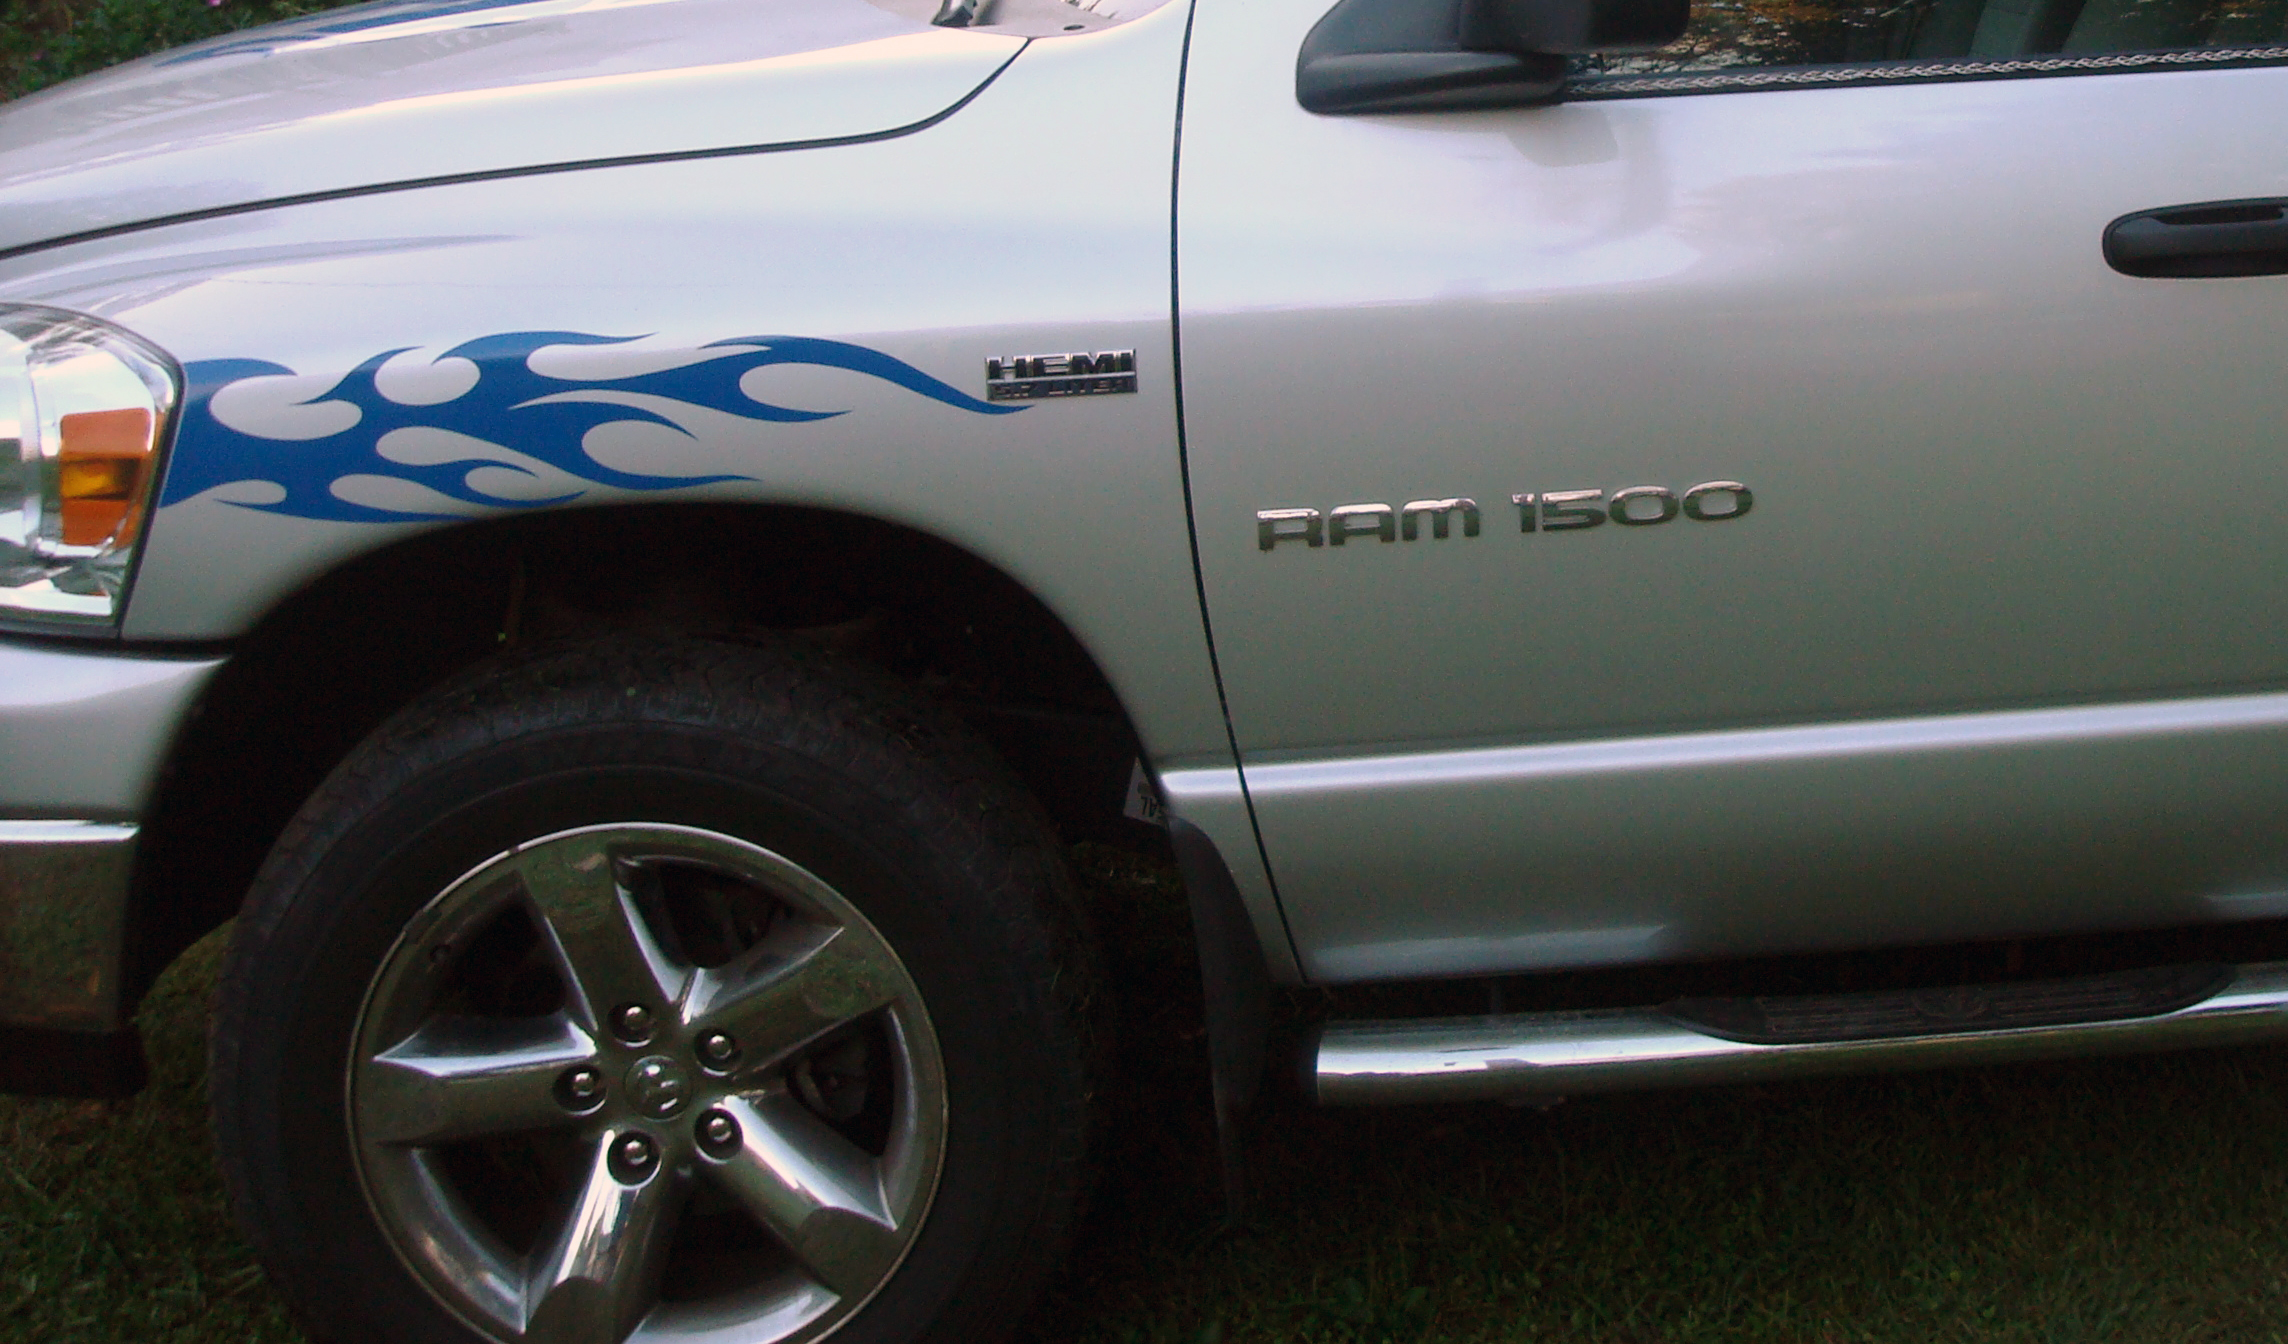 Fender flame decal decals graphics fits chevy dodge ford toyota